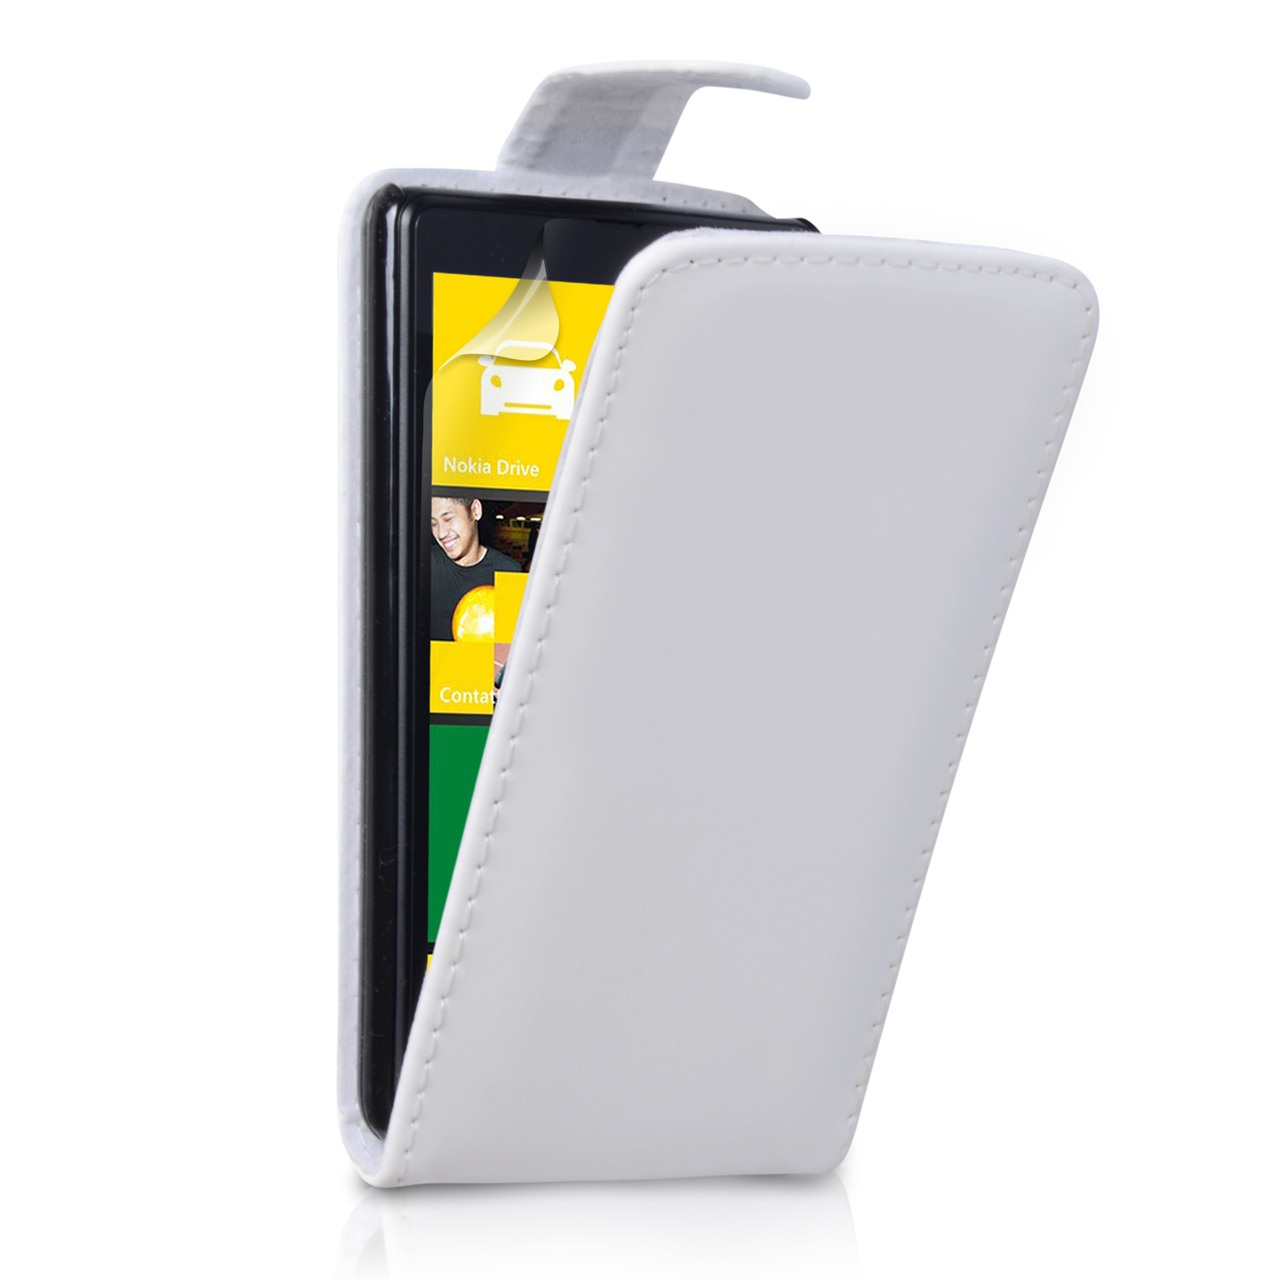 YouSave Accessories Nokia Lumia 820 Leather Effect Flip Case - White